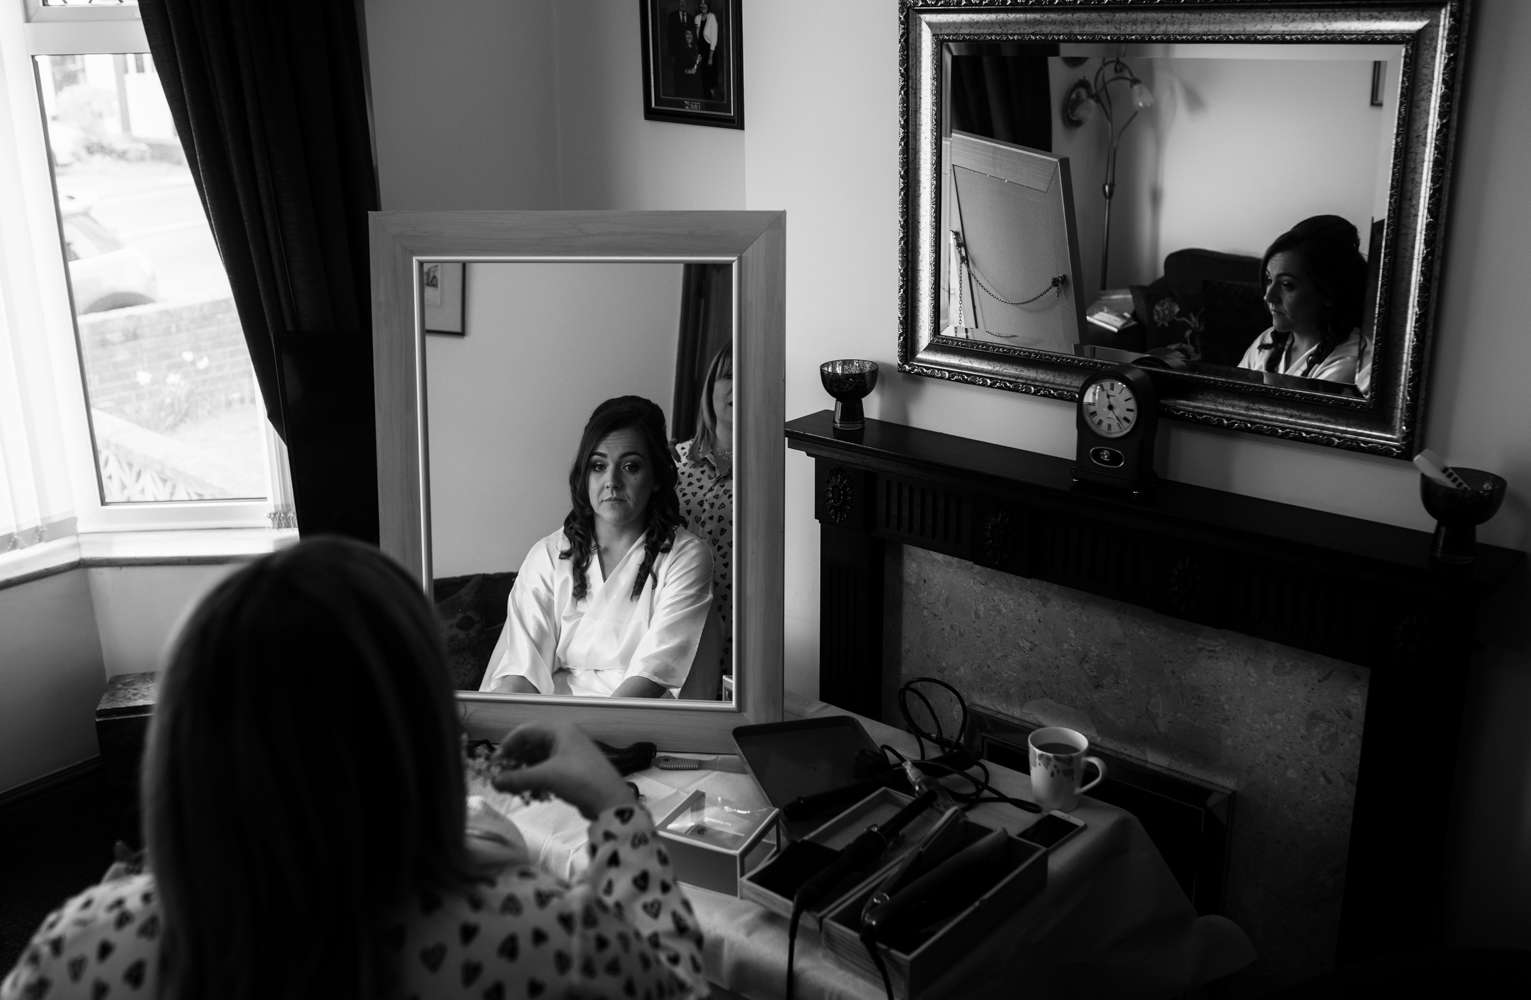 A Black and White image of the brides reflection in a mirror